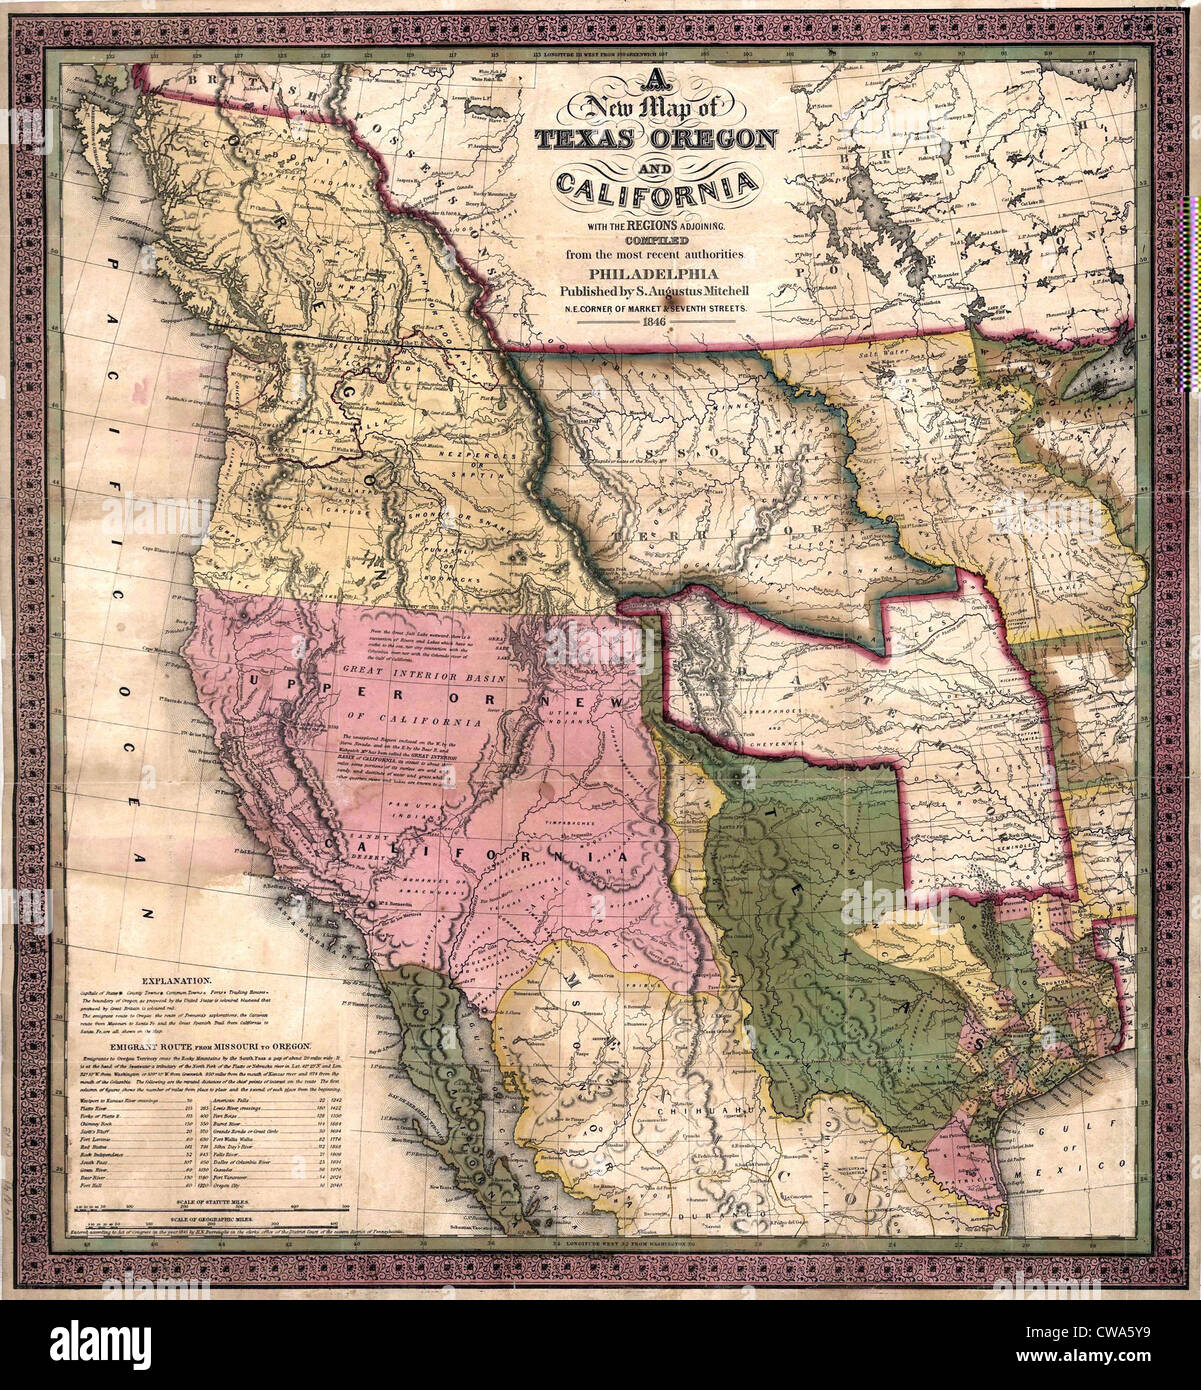 an introduction to the american annexation of mexico A conflict that occurred as the result of mexican resentment over the us annexation of texas and a border dispute, the mexican-american war represents the only major military dispute between the two nations the war was fought primarily in northeastern and central mexico and resulted in a decisive .